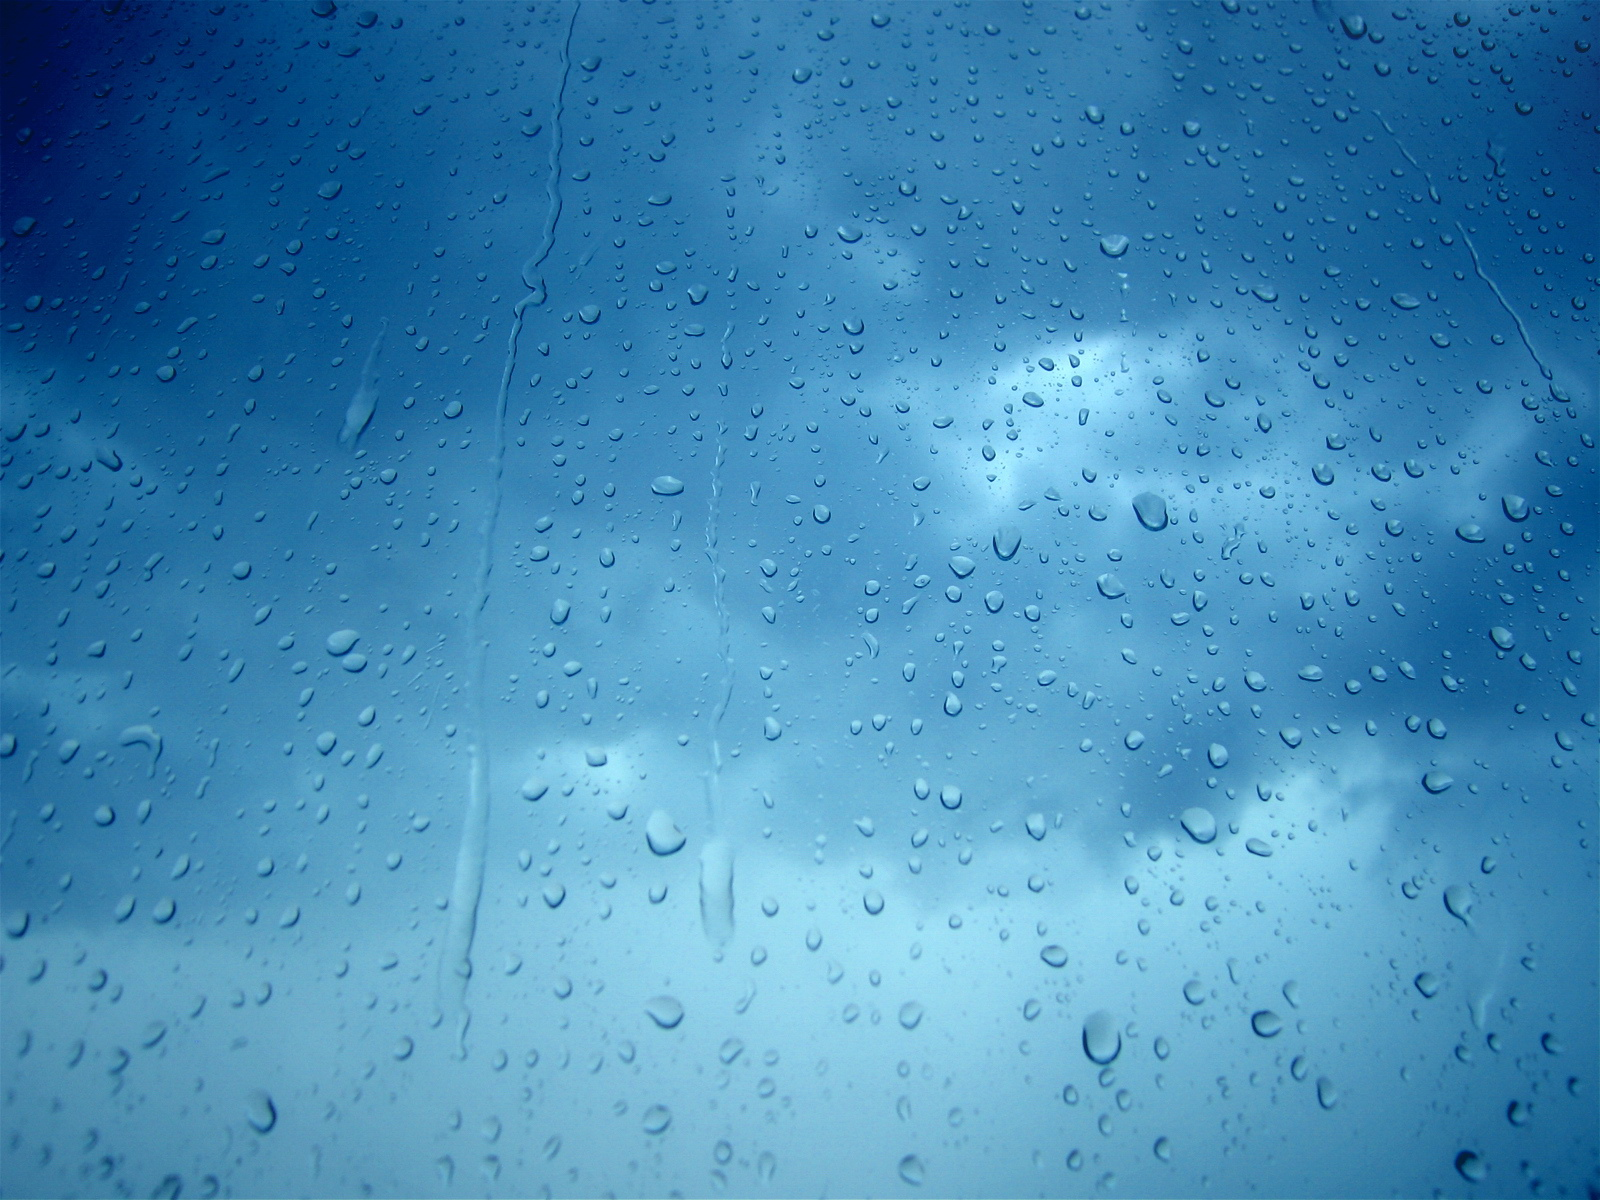 wallpapers box raindrops on window hd wallpapers